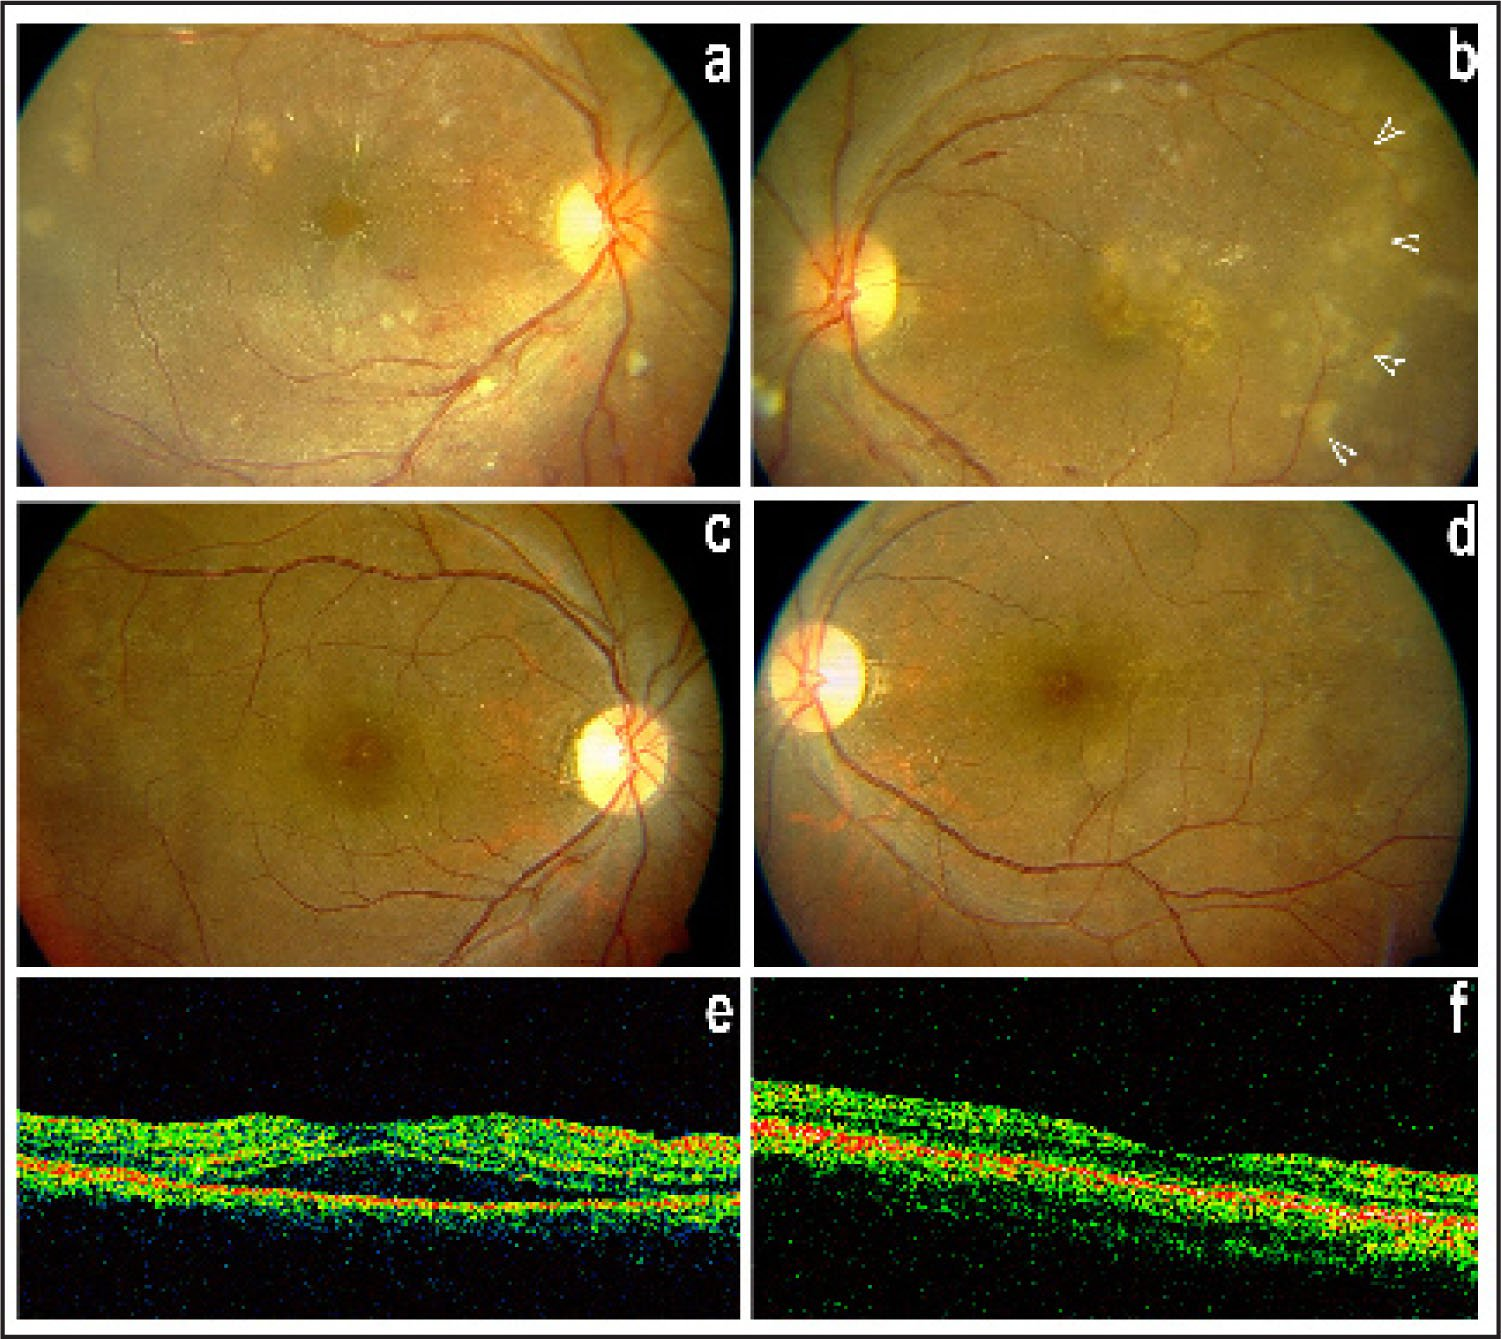 (A–B) This 25-Year-Old Woman (case 5) Developed Bilateral Grade 3 Hypertensive Retinopathy; Choroidopathy Was Manifest as Macular Detachments (more in the Right) and Focal Lesions of Retinal Pigment Epithelium (more in the Left; Arrowheads). Blood Pressure Was 200/130 mm Hg; the Patient Was not Pregnant. (C–D) A Month Later, with Stabilization of Blood Pressure, the Fundi Were Nearly Normal Except Focal Pigmentary Alterations Replacing the Acute Pale Lesions (Elschnig's Spots). (E–F) OCT Showed Complete Resolution of Macular Elevation Bilaterally, Shown Here in the Right Eye.